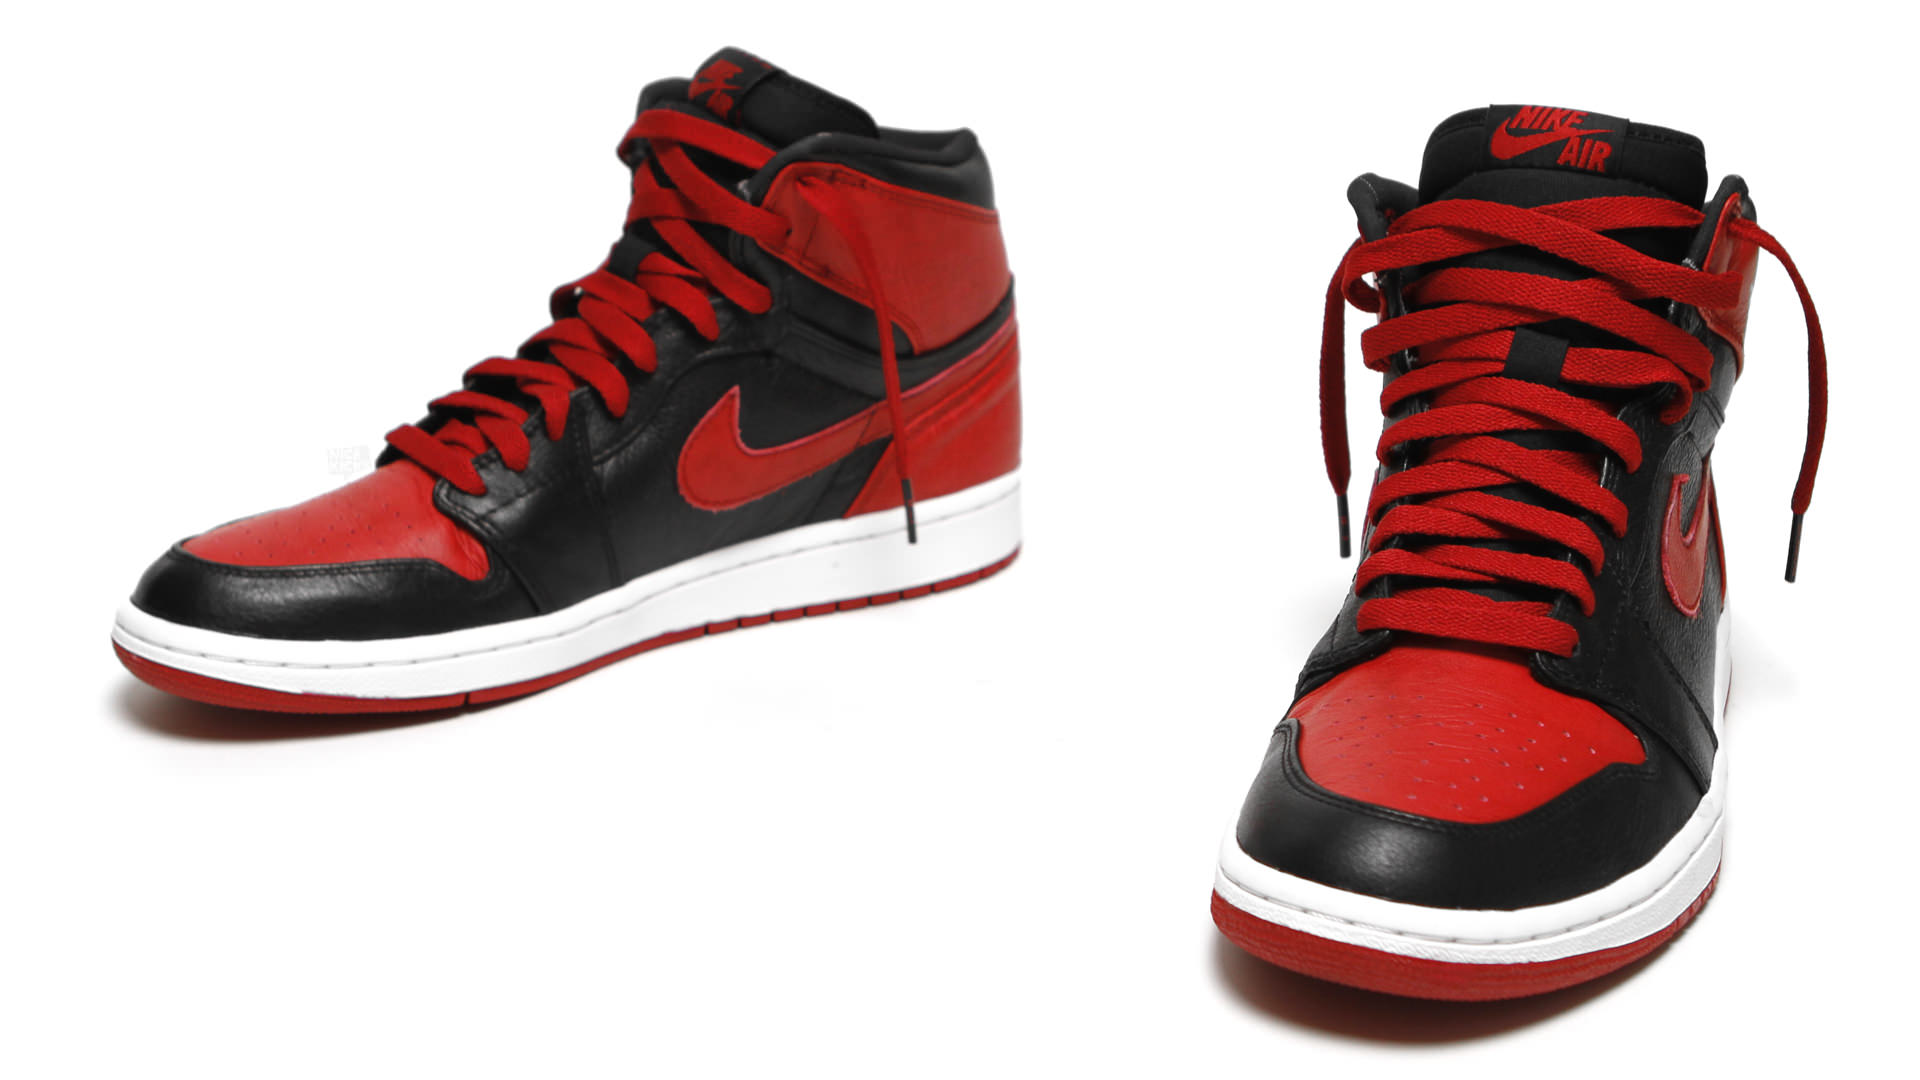 NIKE-AIR-JORDAN-HIGH-RETRO-BAN-1920X1080-jpeg-1920×1080-wallpaper-wp3409246